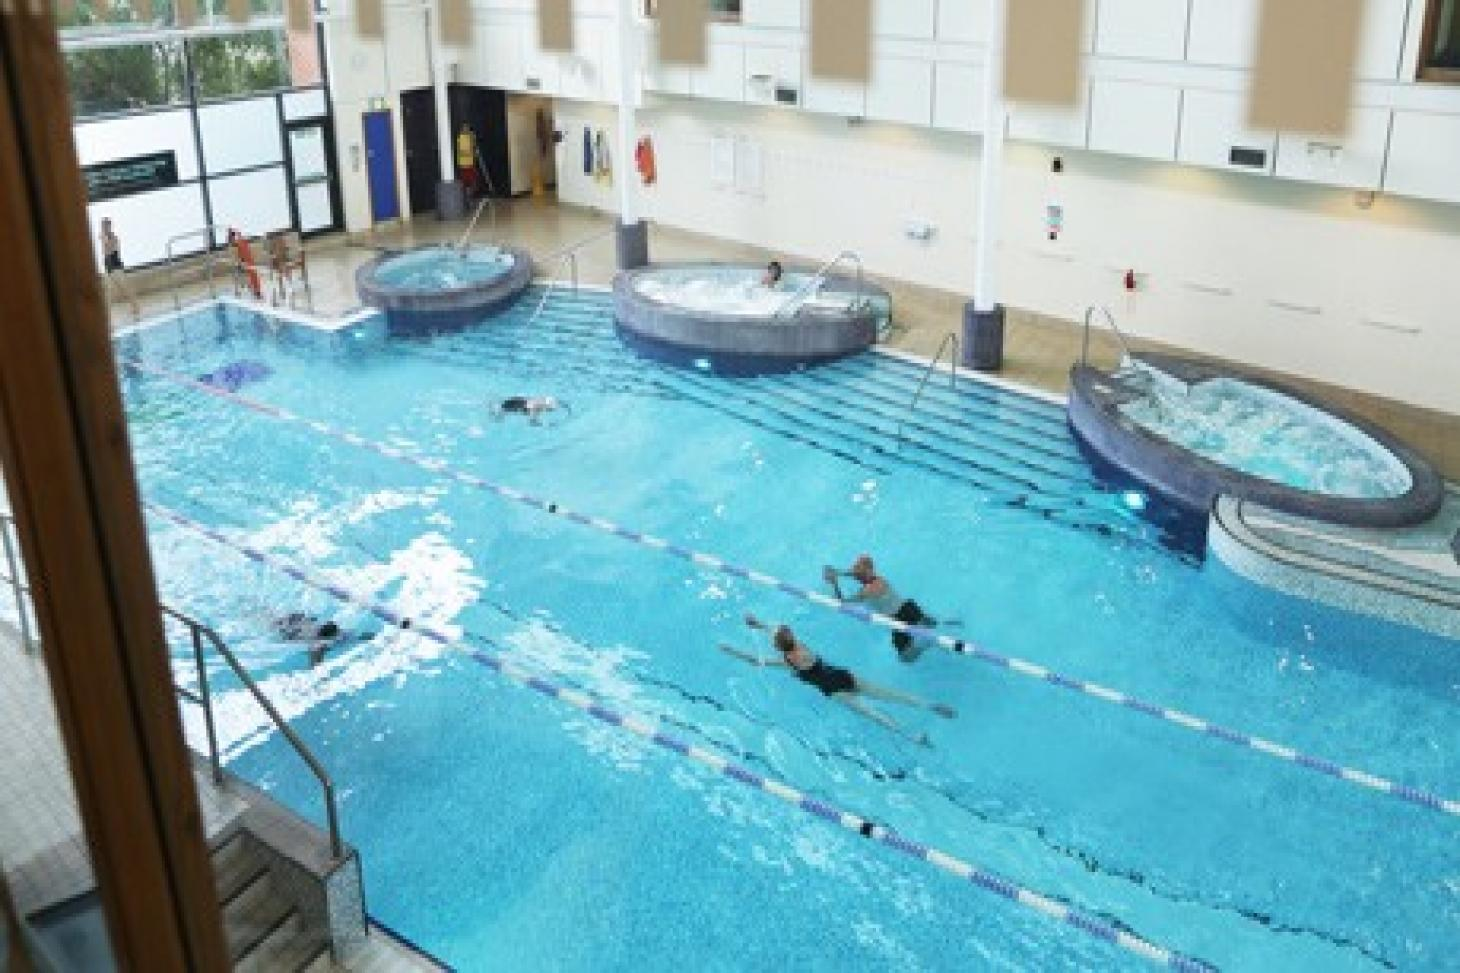 Nuffield Health Fitness & Wellbeing City Indoor swimming pool